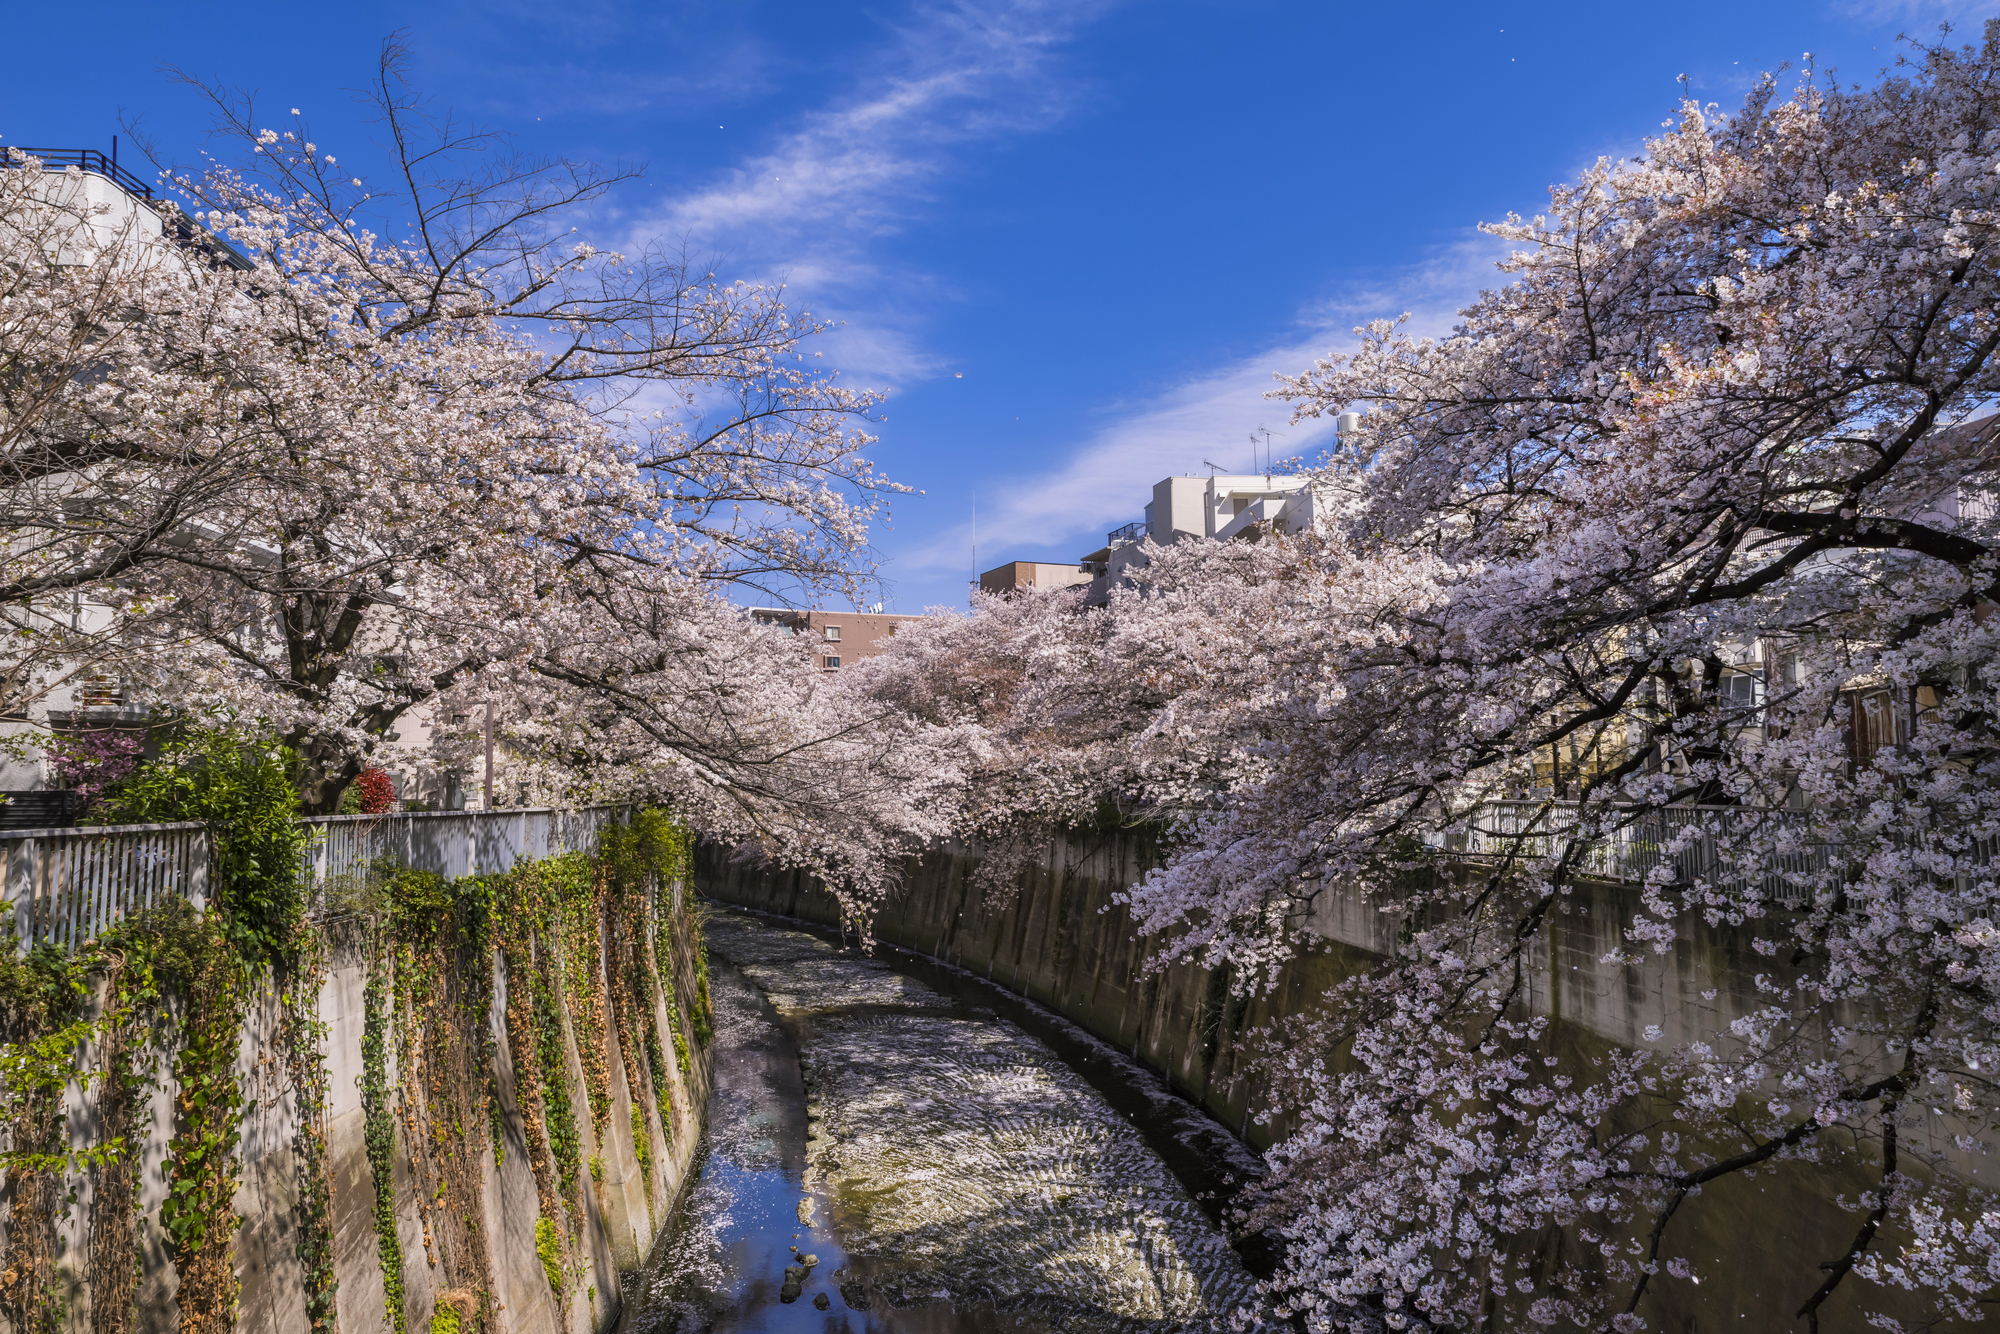 These Are The Least Crowded Places In Tokyo For Cherry Blossoms